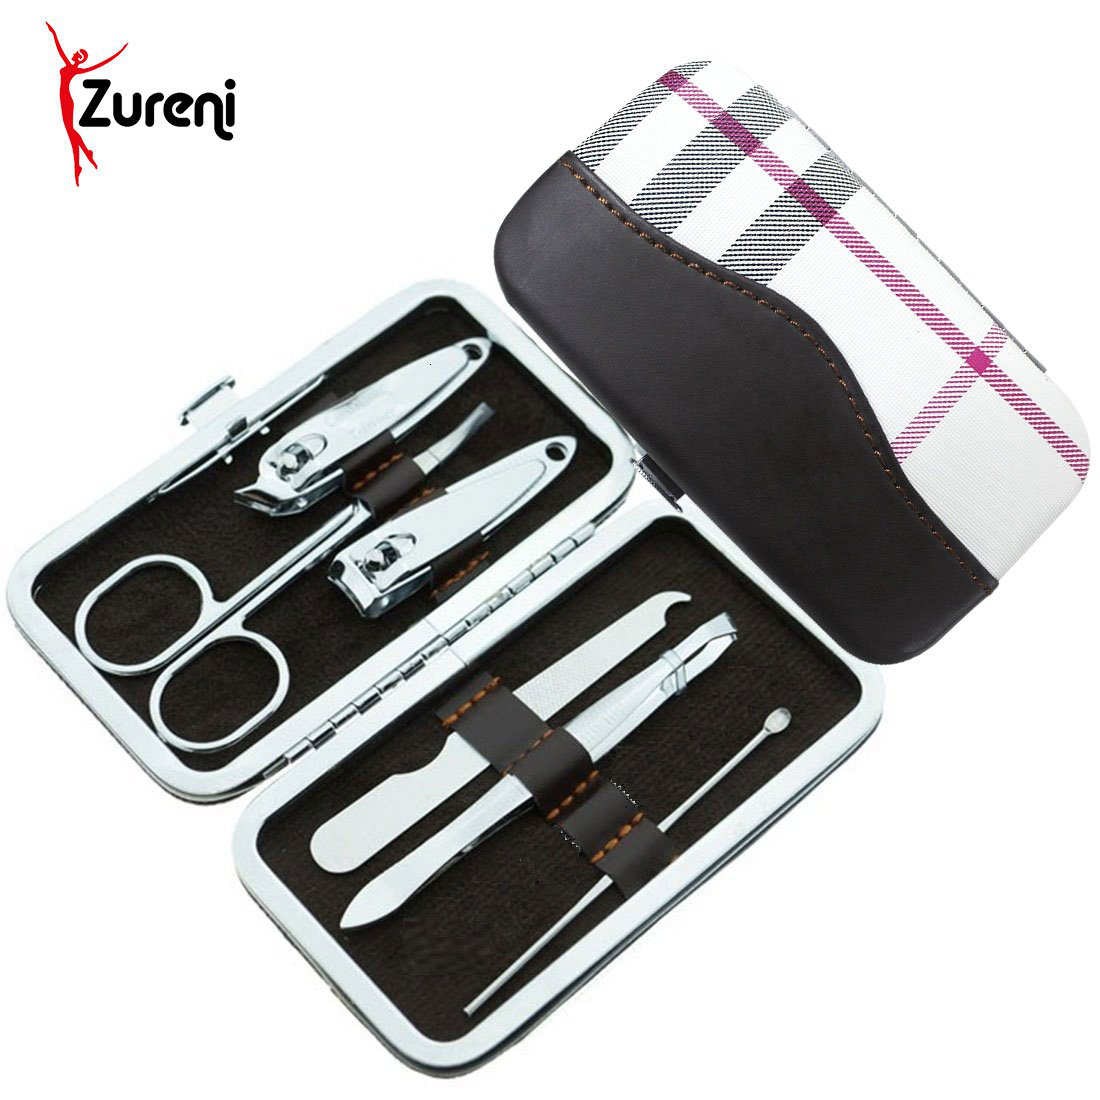 Zureni 6pcs Stainless Steel Nail Clipper Set Manicure Pedicure Set Grooming Kit with PU Leather Case for Tools